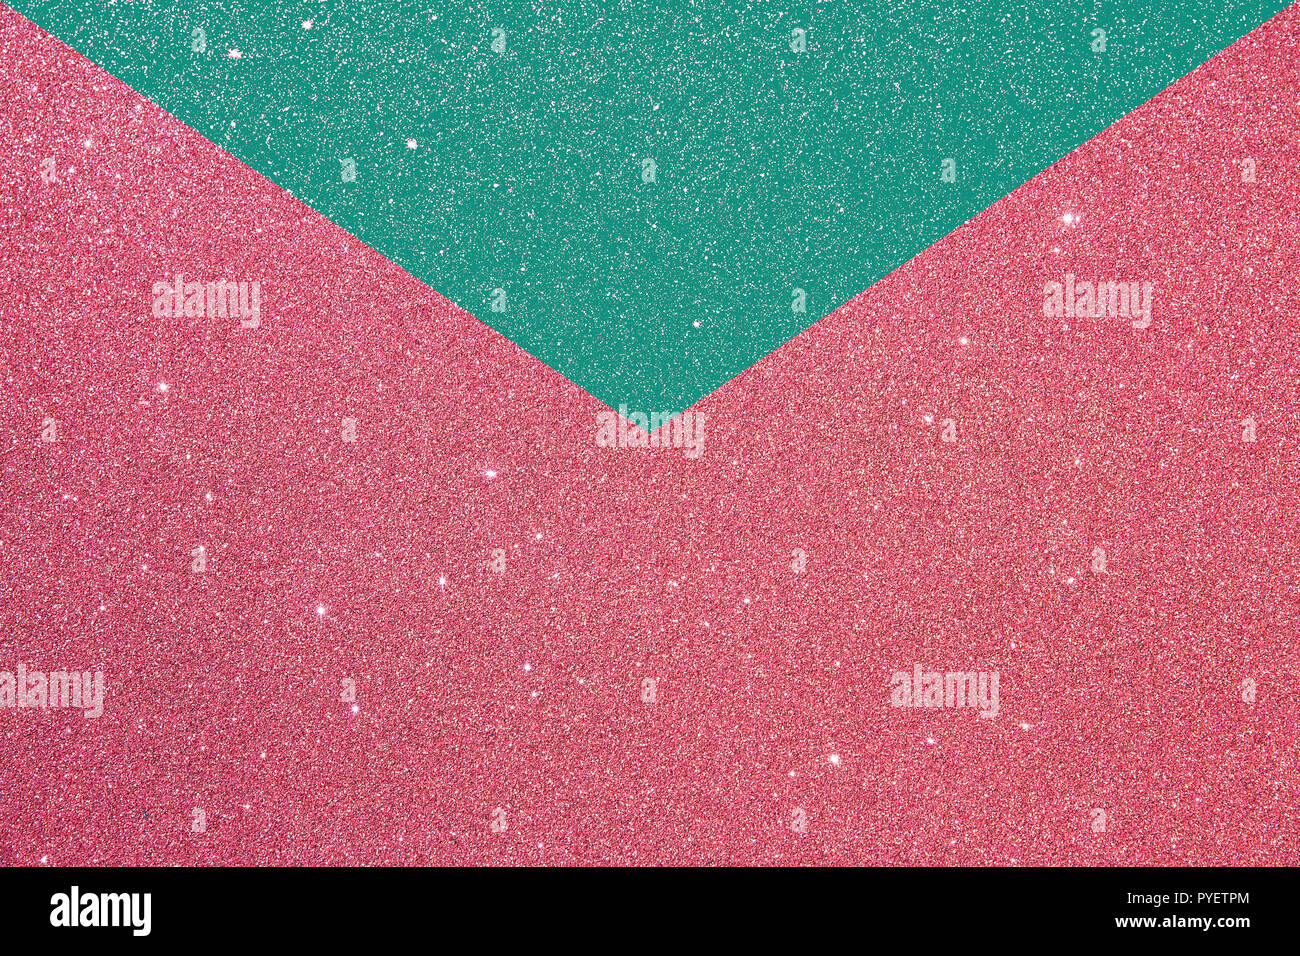 litlle flashes on pink and green  envelope card.background with rough texture - Stock Image